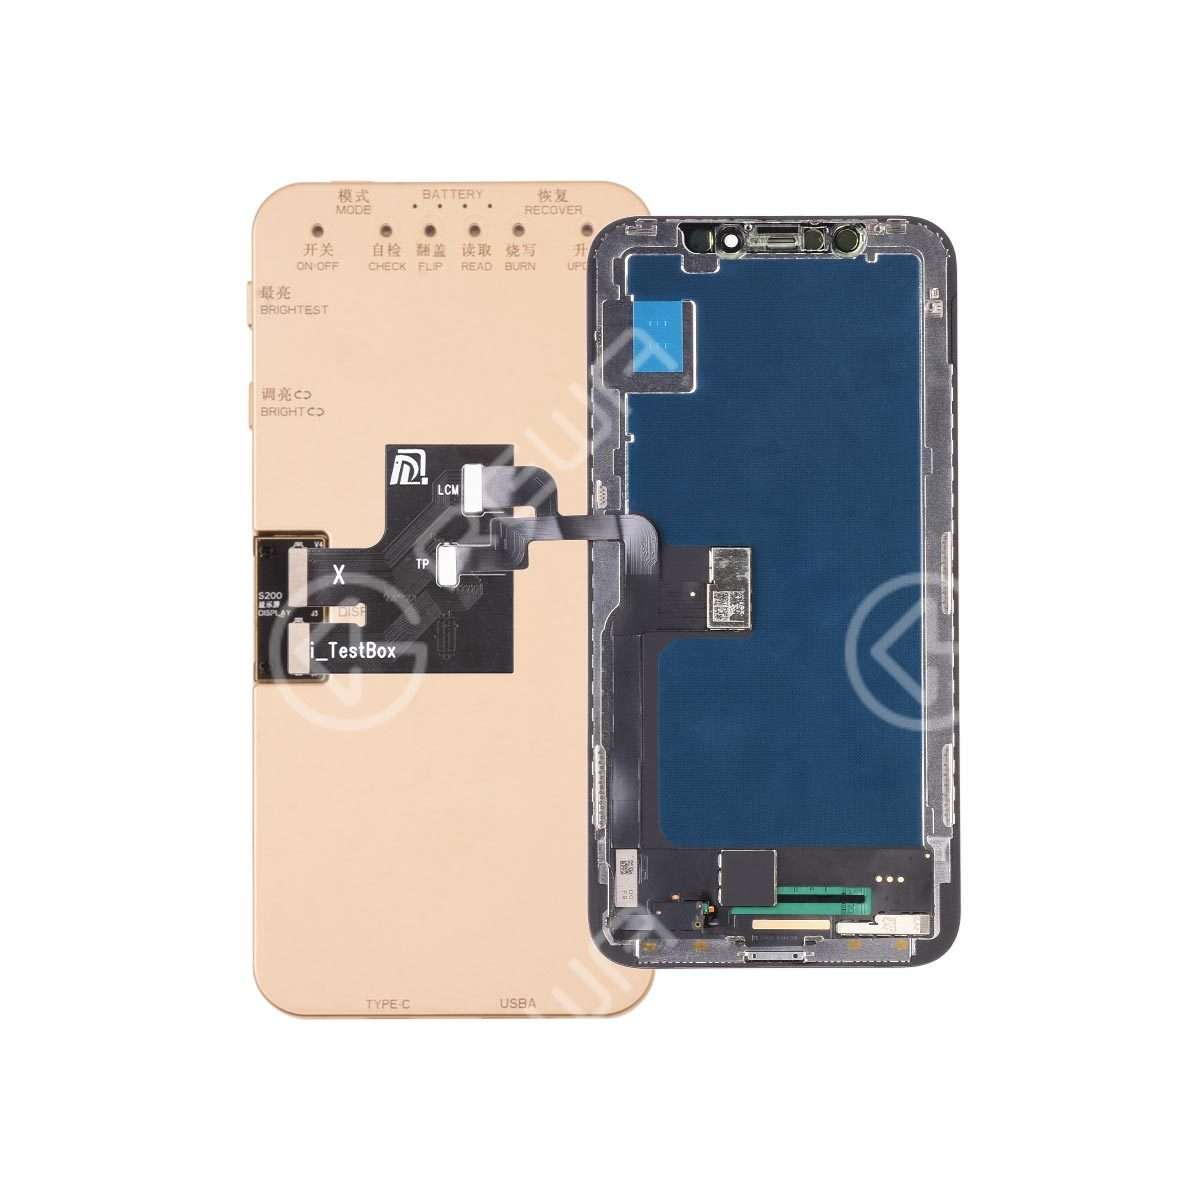 S300 iTestBox Display And Touch Multi-function Tester For iPhone 6S - 12 Pro Max